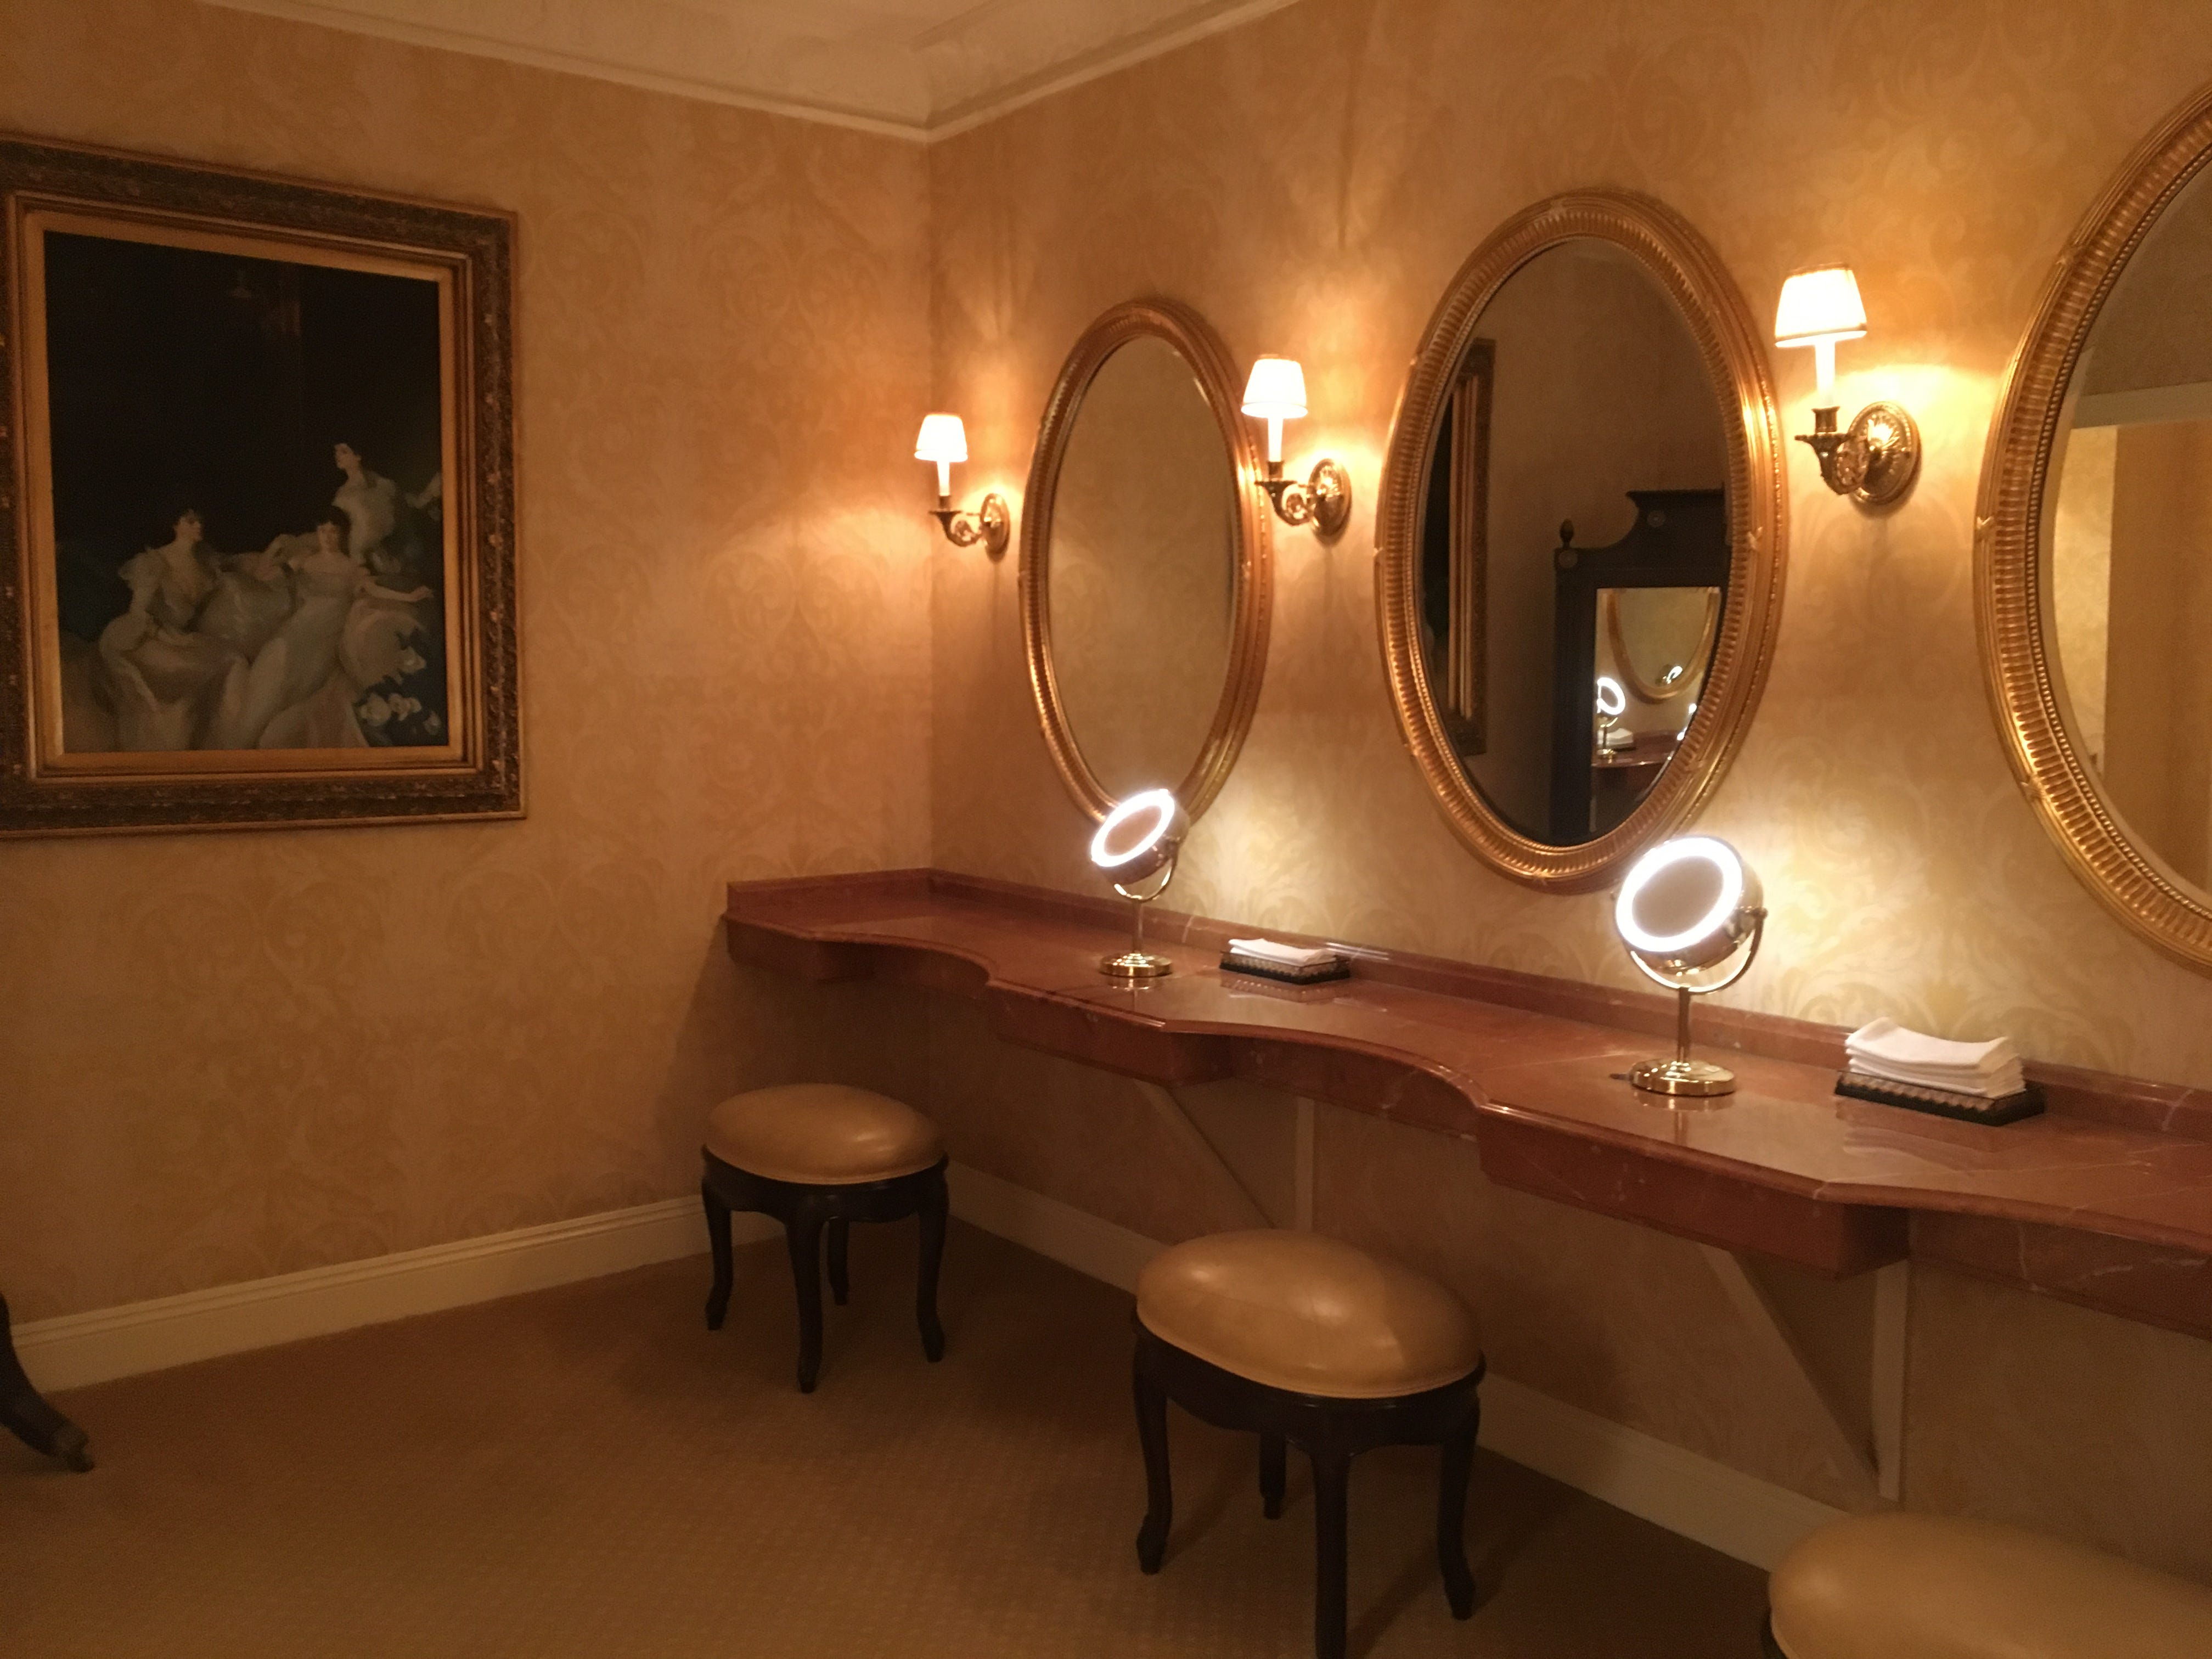 Though it doesn't get the same attention as the men's room, the women's restroom at the Hermitage Hotel downtown also has style